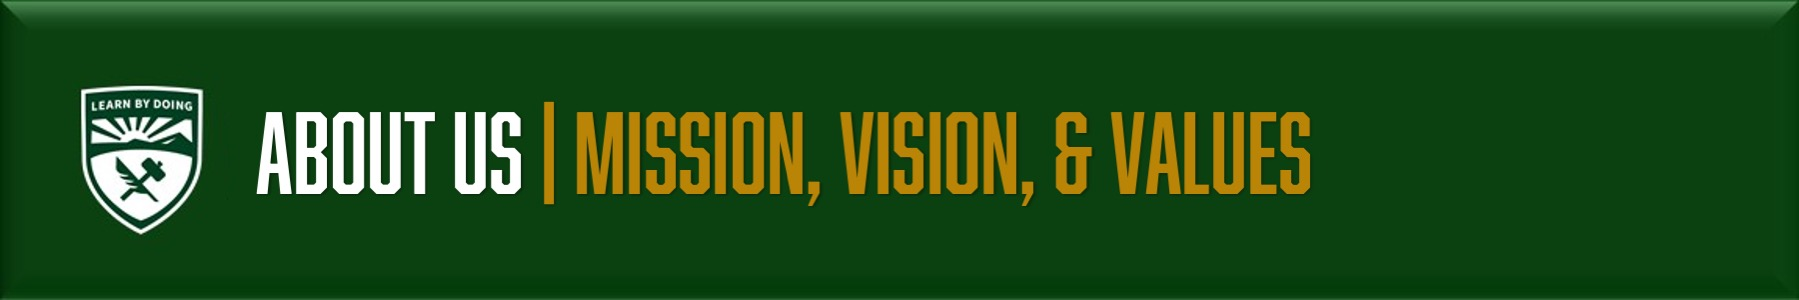 About Us- Mission Vision Values